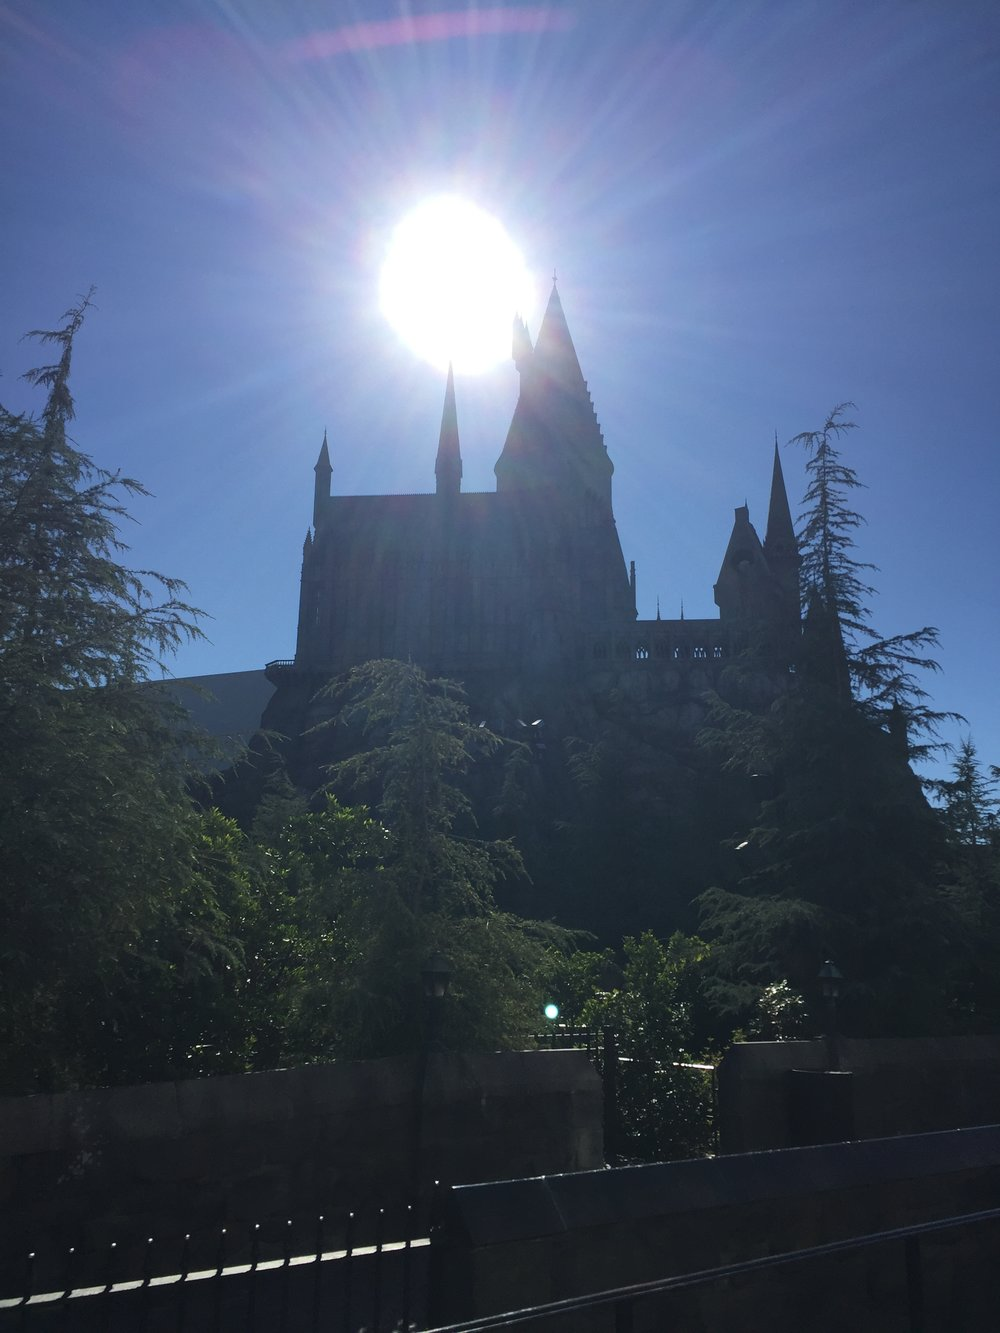 [image description: The huge, stately Hogwarts castle in all its glory––turrets, bridges, spires, and all––with the morning sun shining large in the background.]